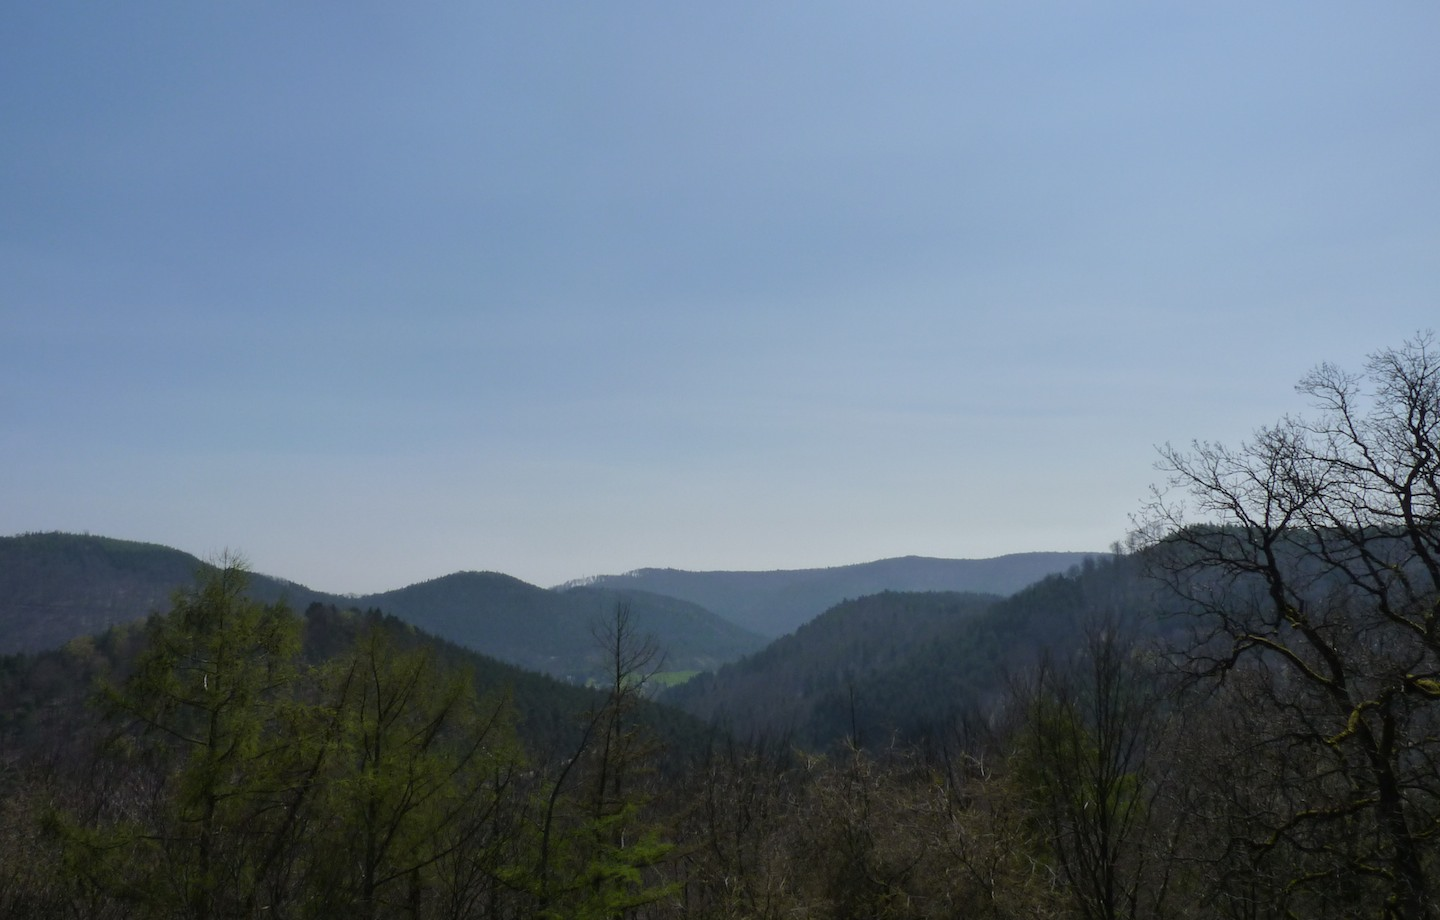 Dispatch from Metz: The Northern Vosges Mountains